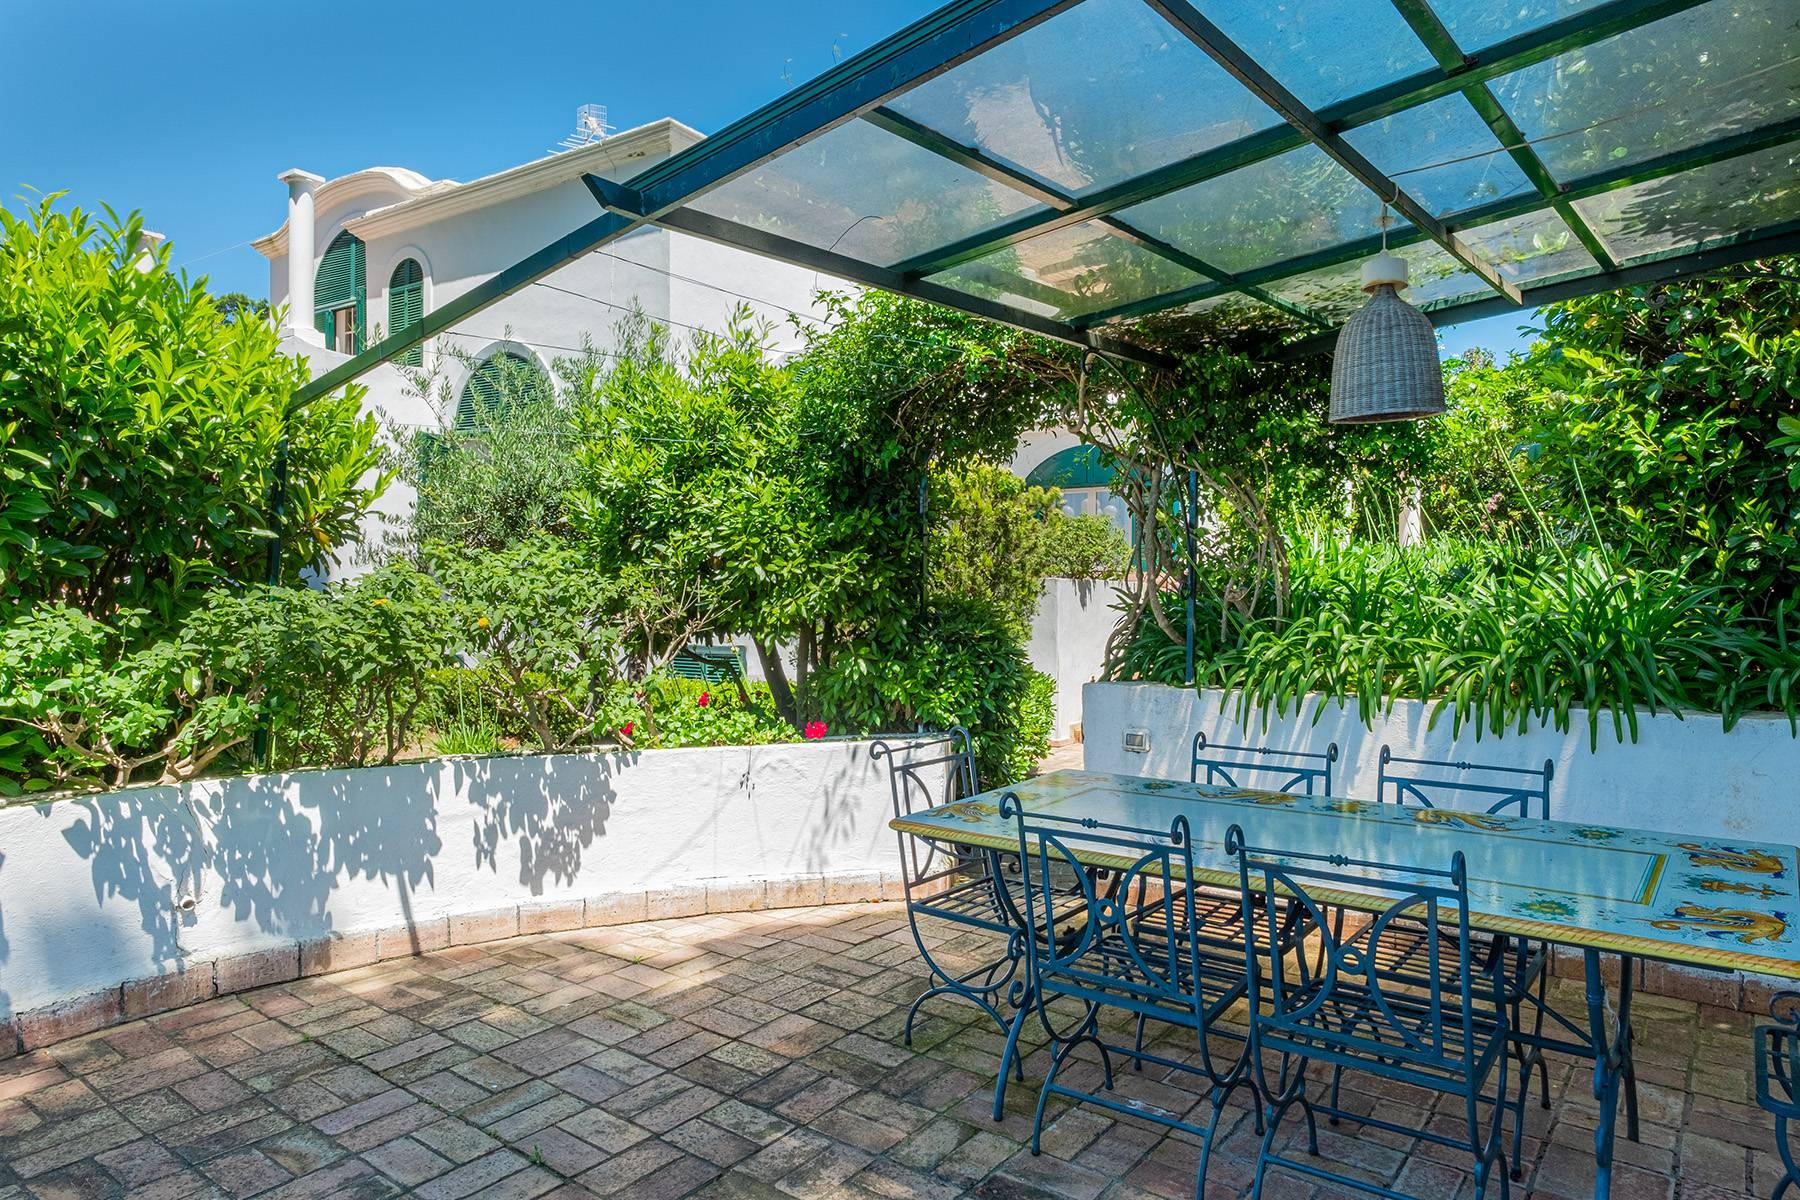 Charming villa with swimming pool in Anacapri - 17